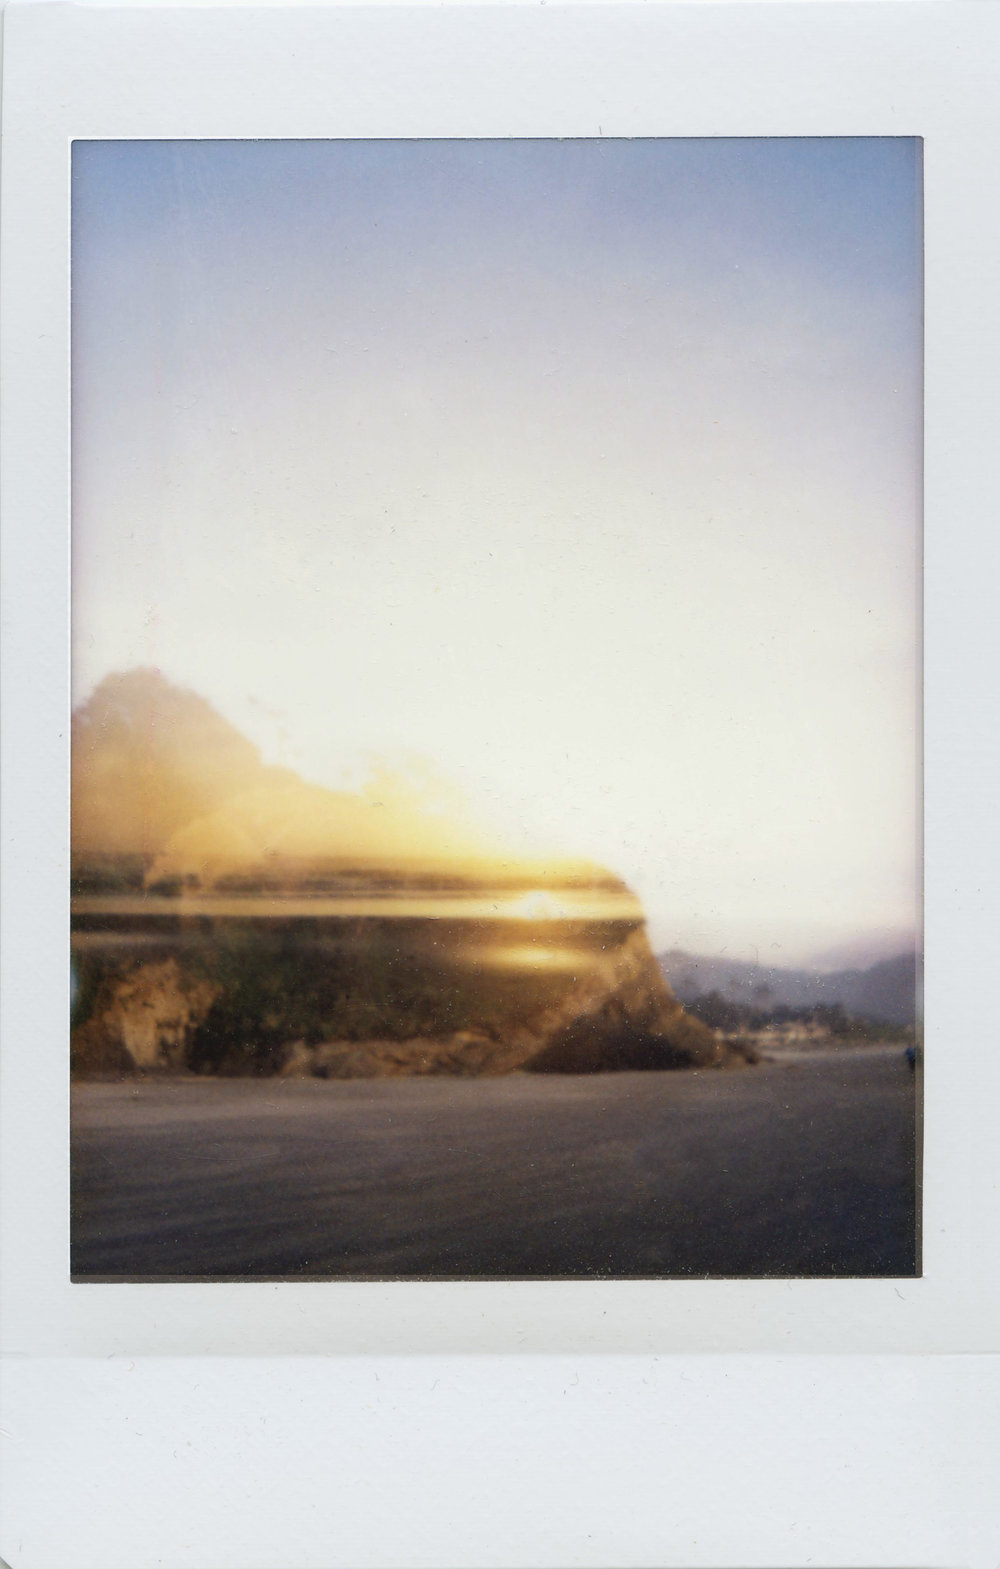 mini+instax+oregon4.jpg